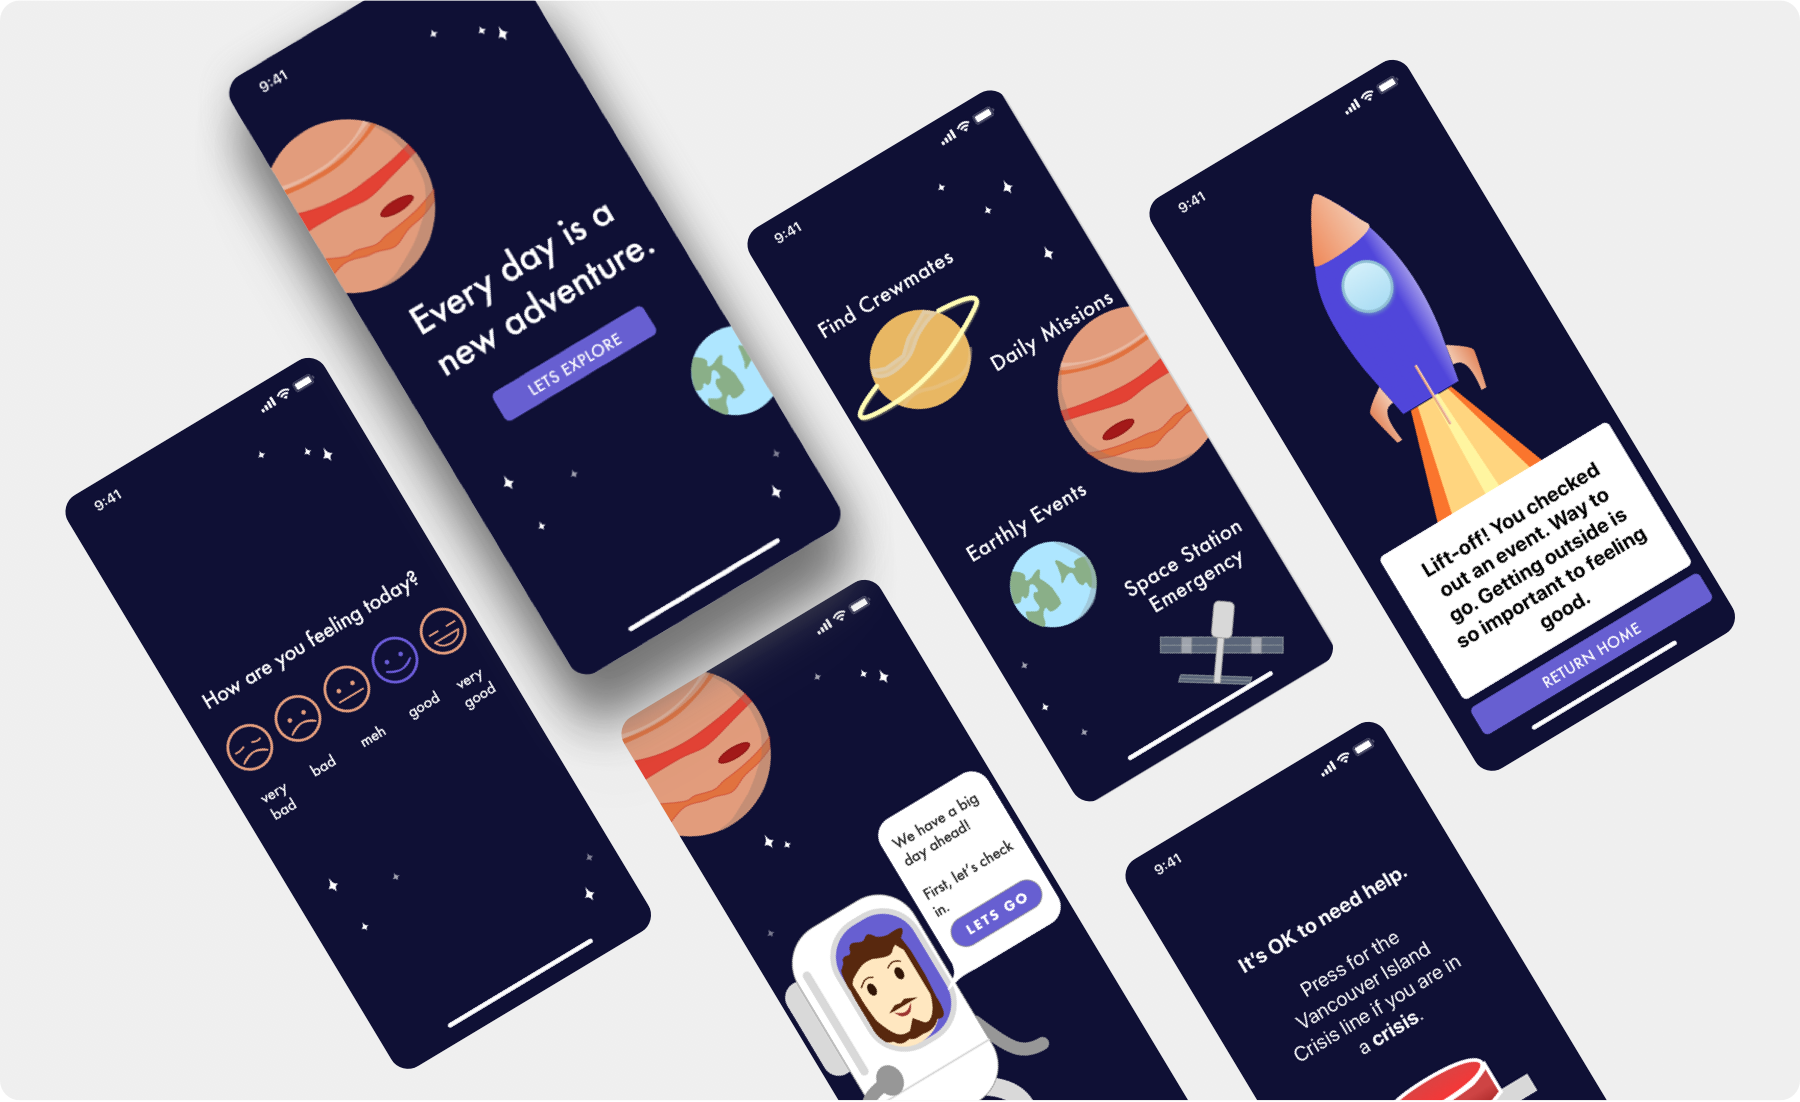 Two iphone screens show illustrations of space stations